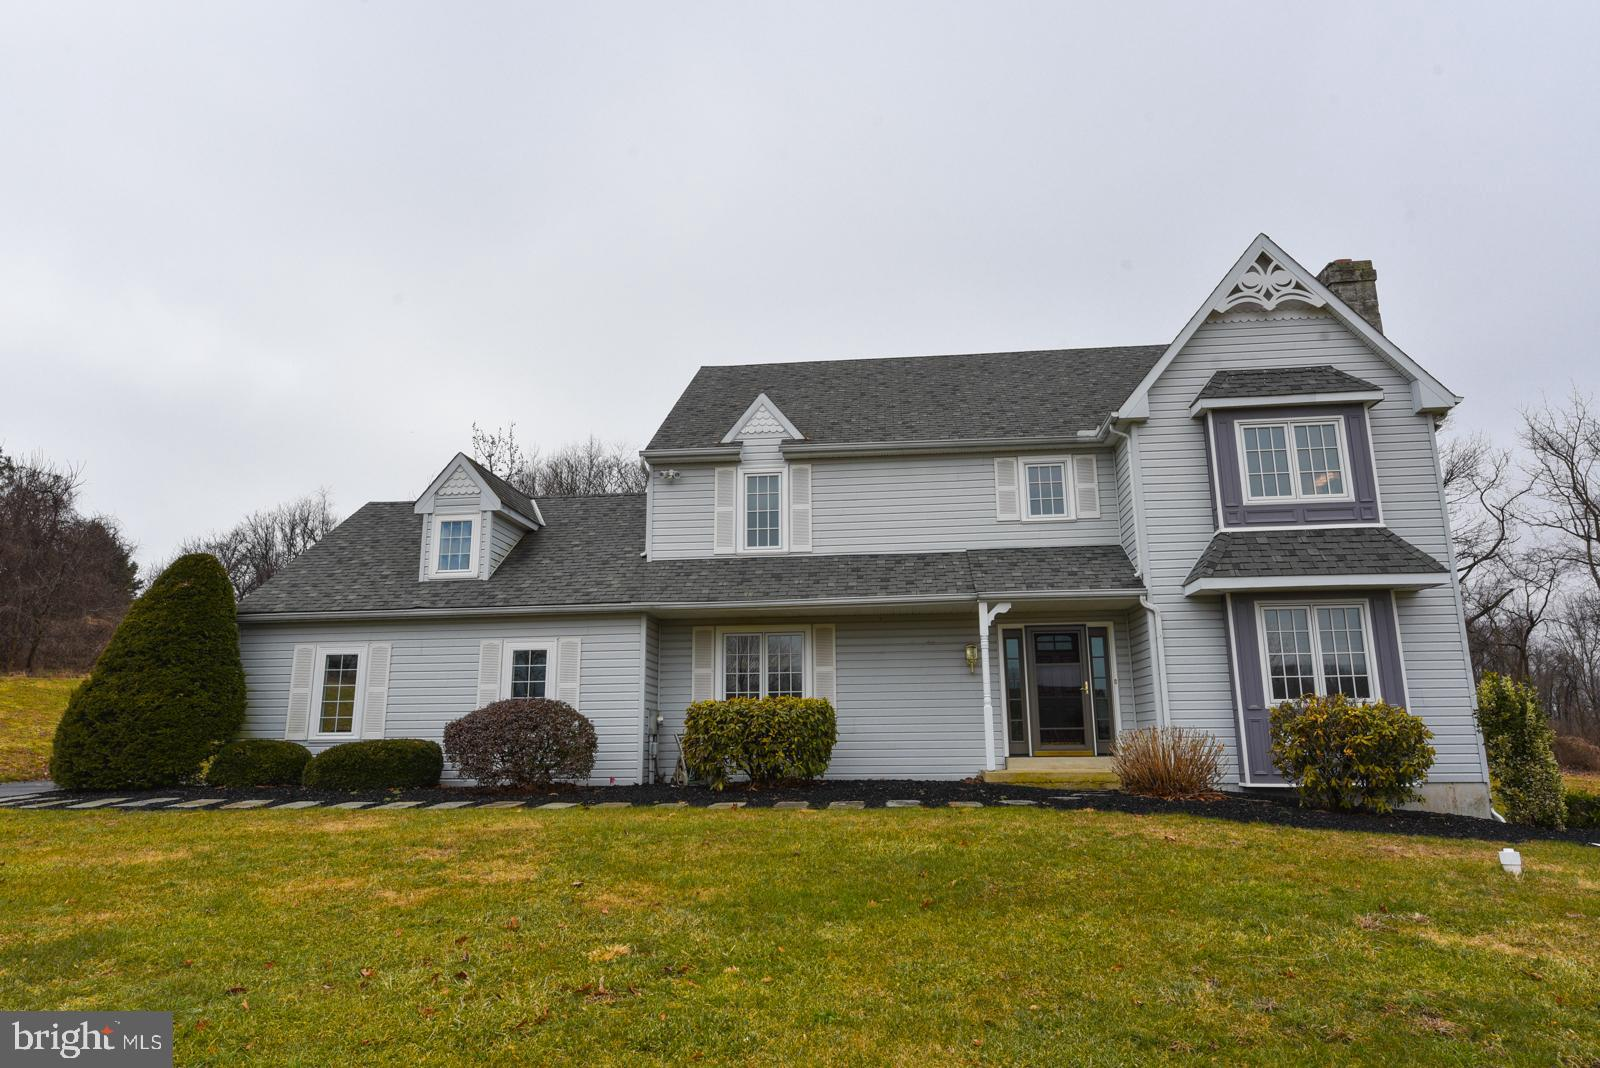 104 Law Lane, Pottstown, PA 19465 - SOLD LISTING, MLS # PACT415058   RE/MAX  of Reading